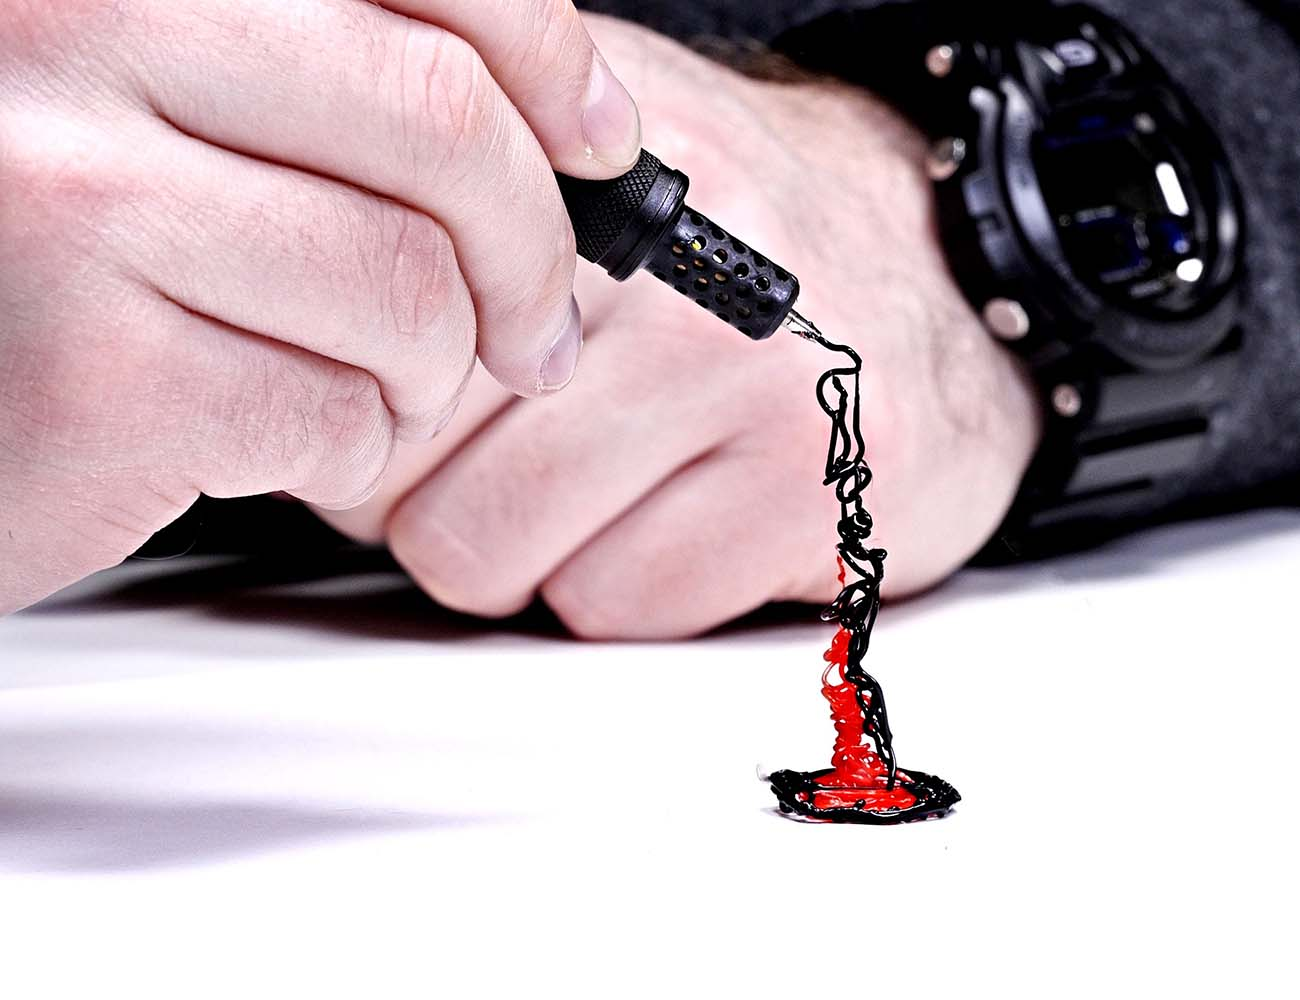 LIX – The Smallest 3D Printing Pen in the World